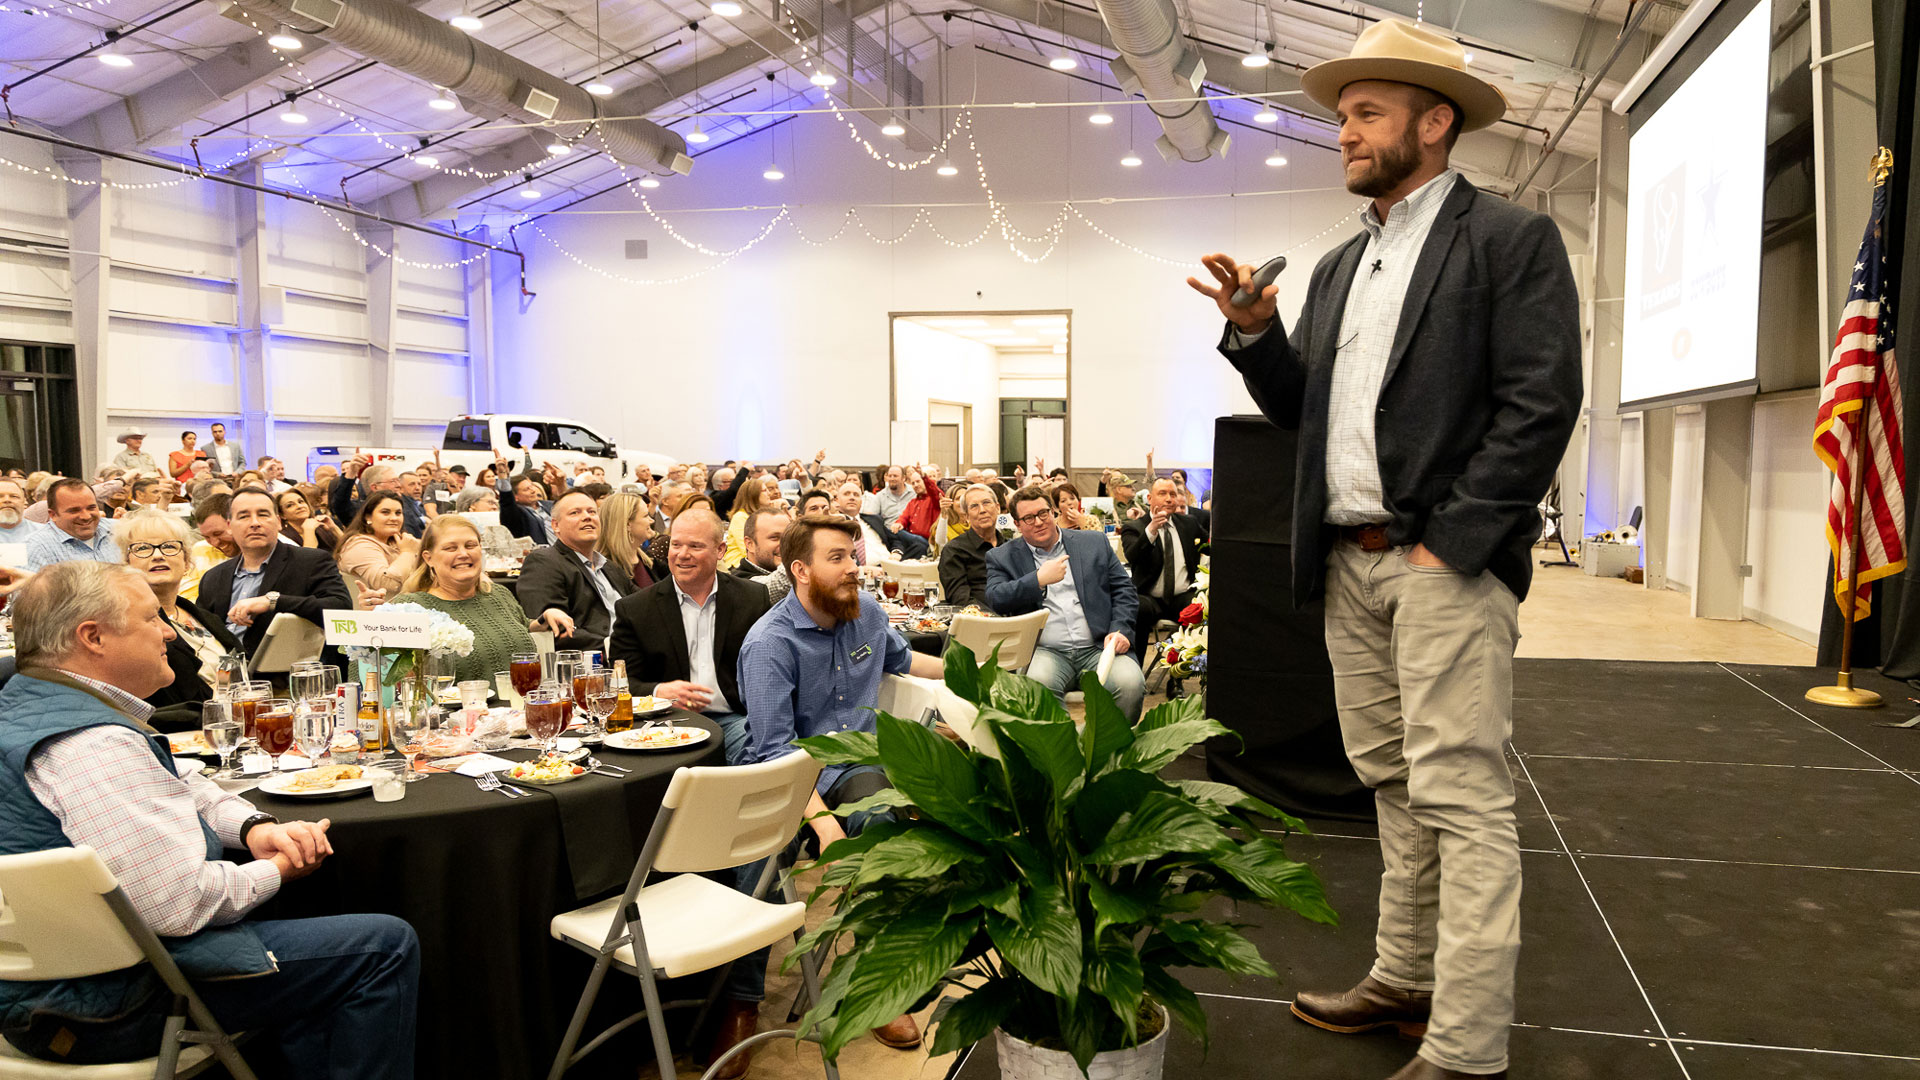 the daytripper speaks at the mcgregor chamber